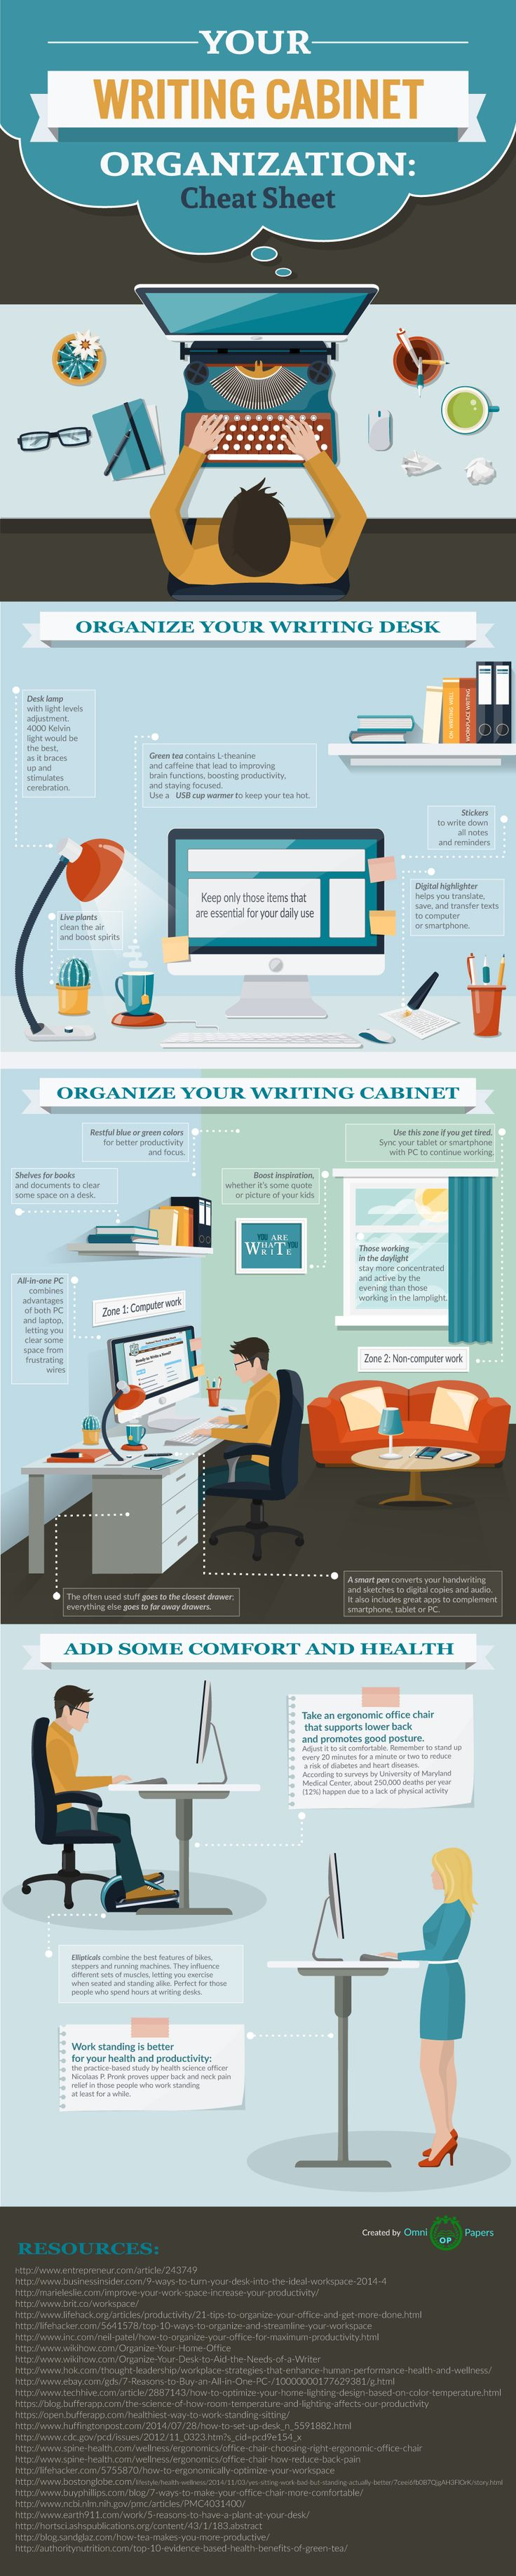 The environment you write in, is just as important as the writing itself. This post will share 3 tips for writing workplace organization. Write in comfort!